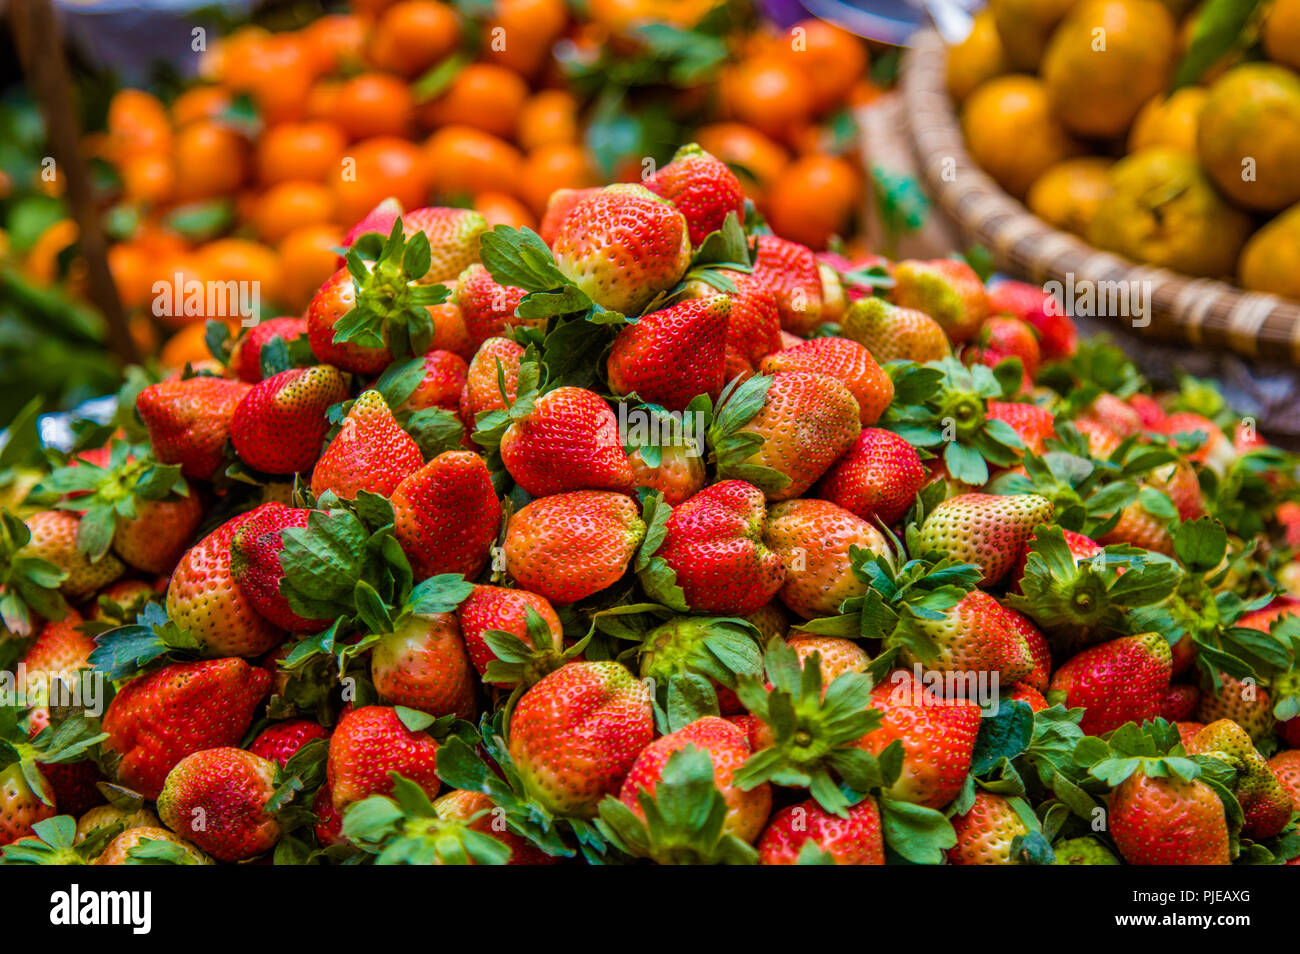 Fresh locally grown strawberries and fruits at the morning ...